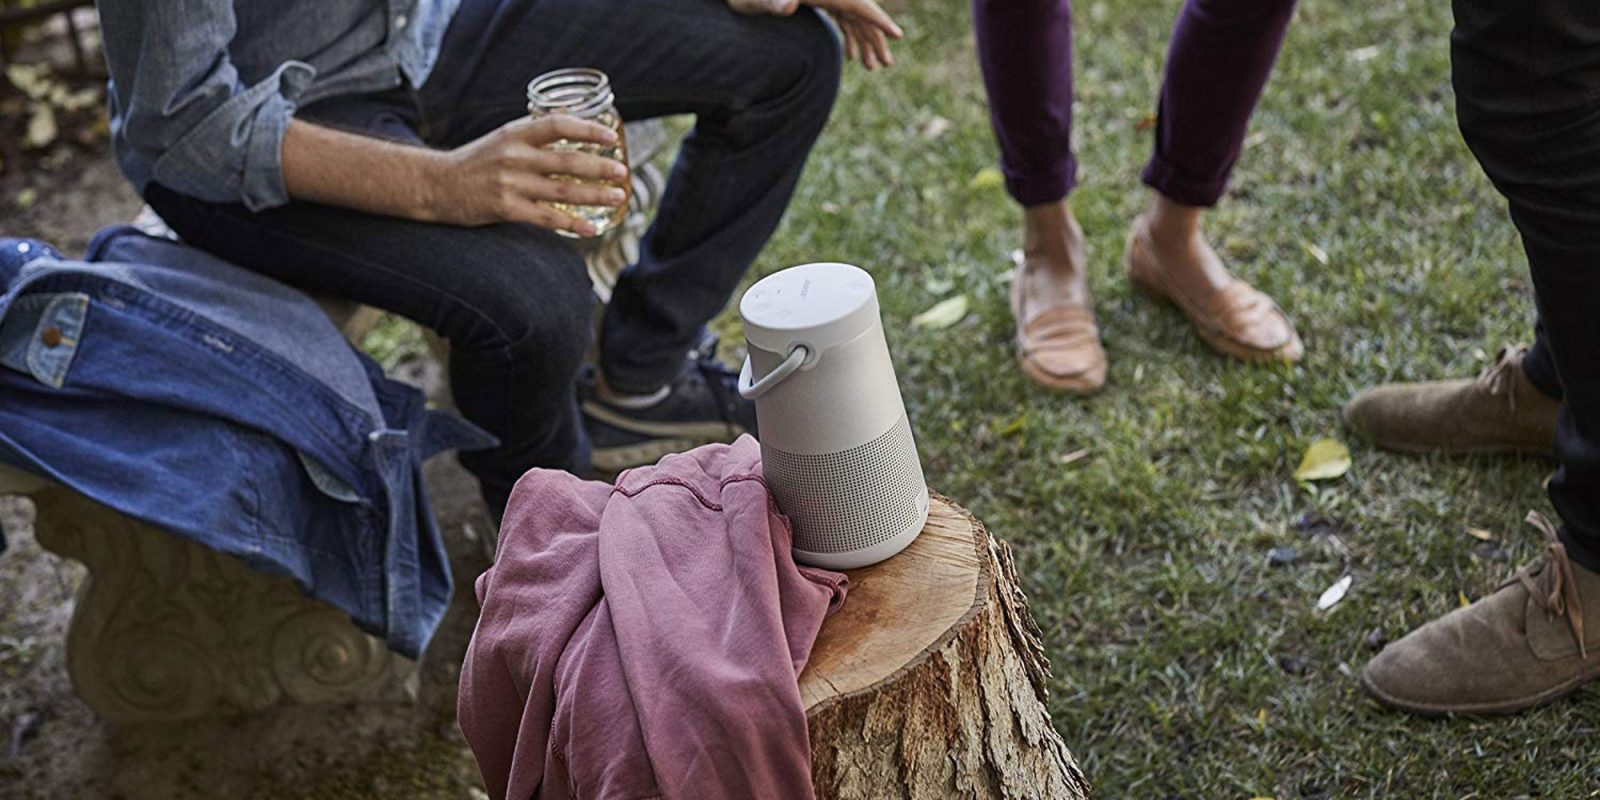 Bose SoundLink Revolve+ 360 speaker hits lowest price yet: $239 (Reg. $299)